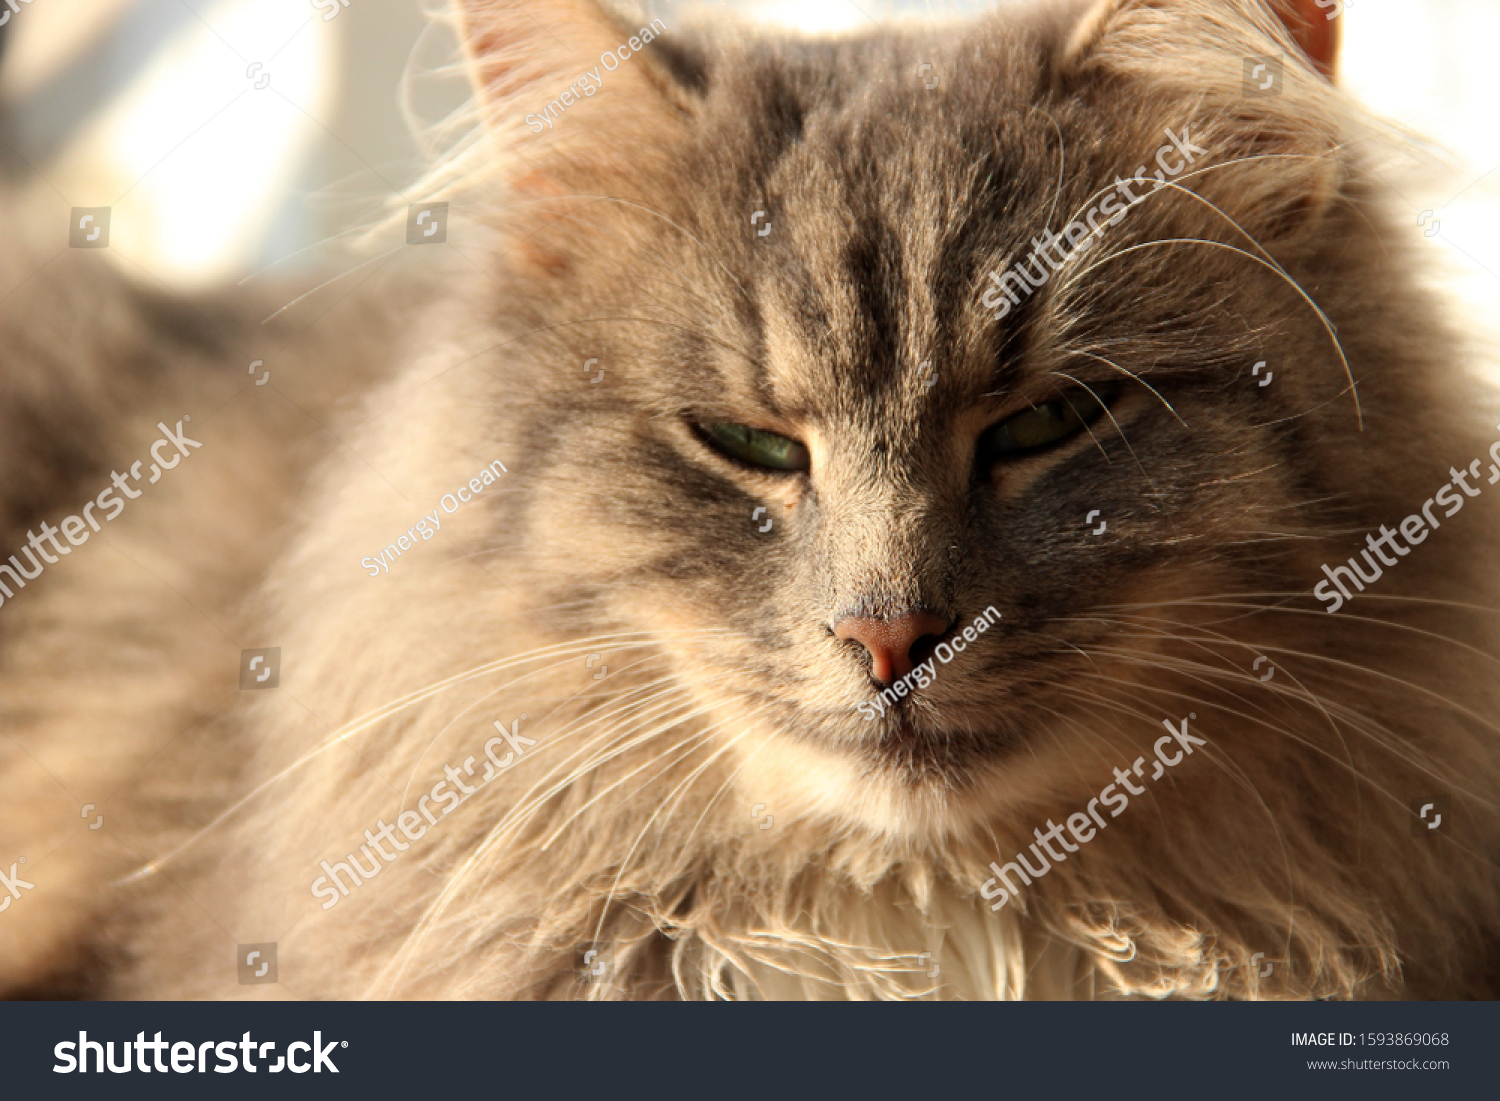 Beautiful Cute Fluffy Gray Cat Pets Stock Photo Edit Now 1593869068